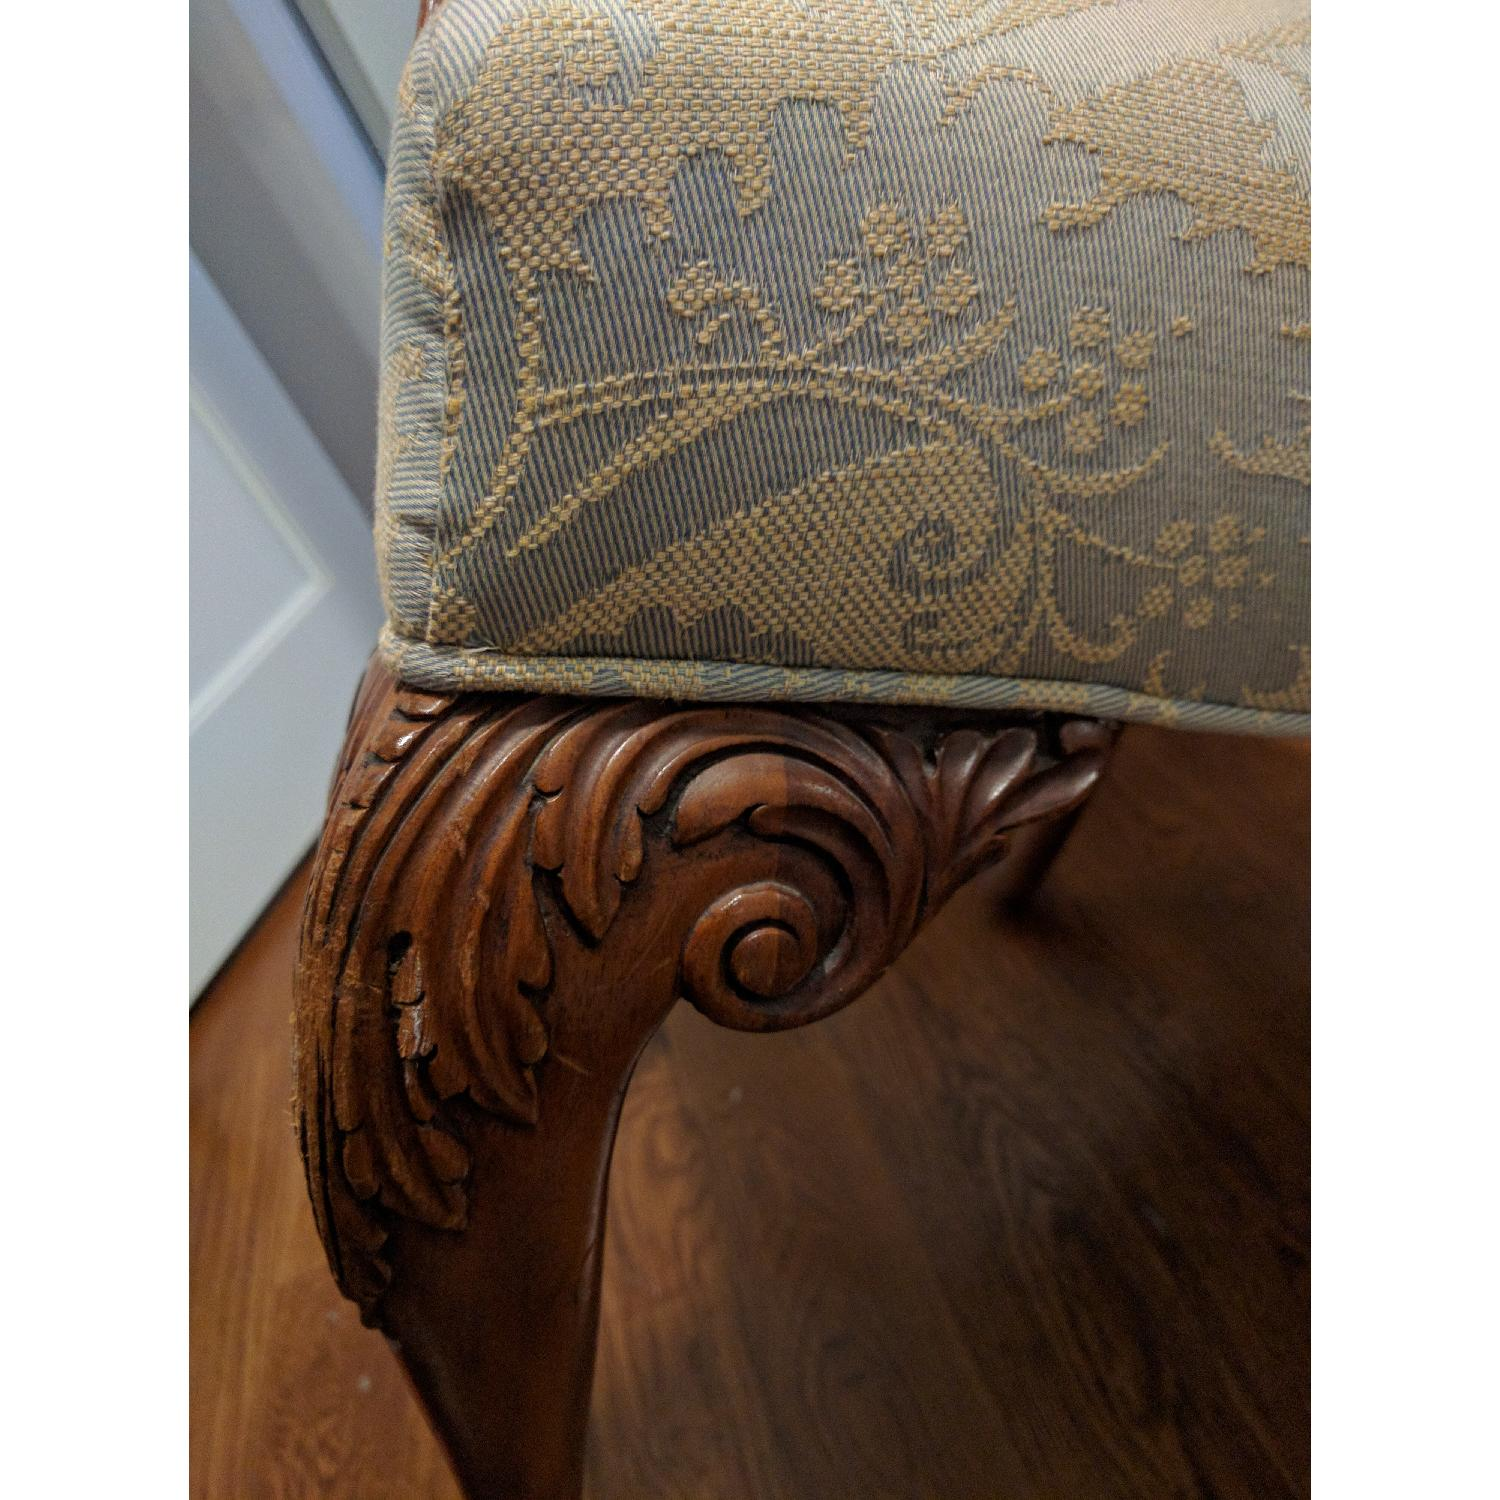 Antique Re-Upholstered Chippendale Carved Wood Chair - image-3